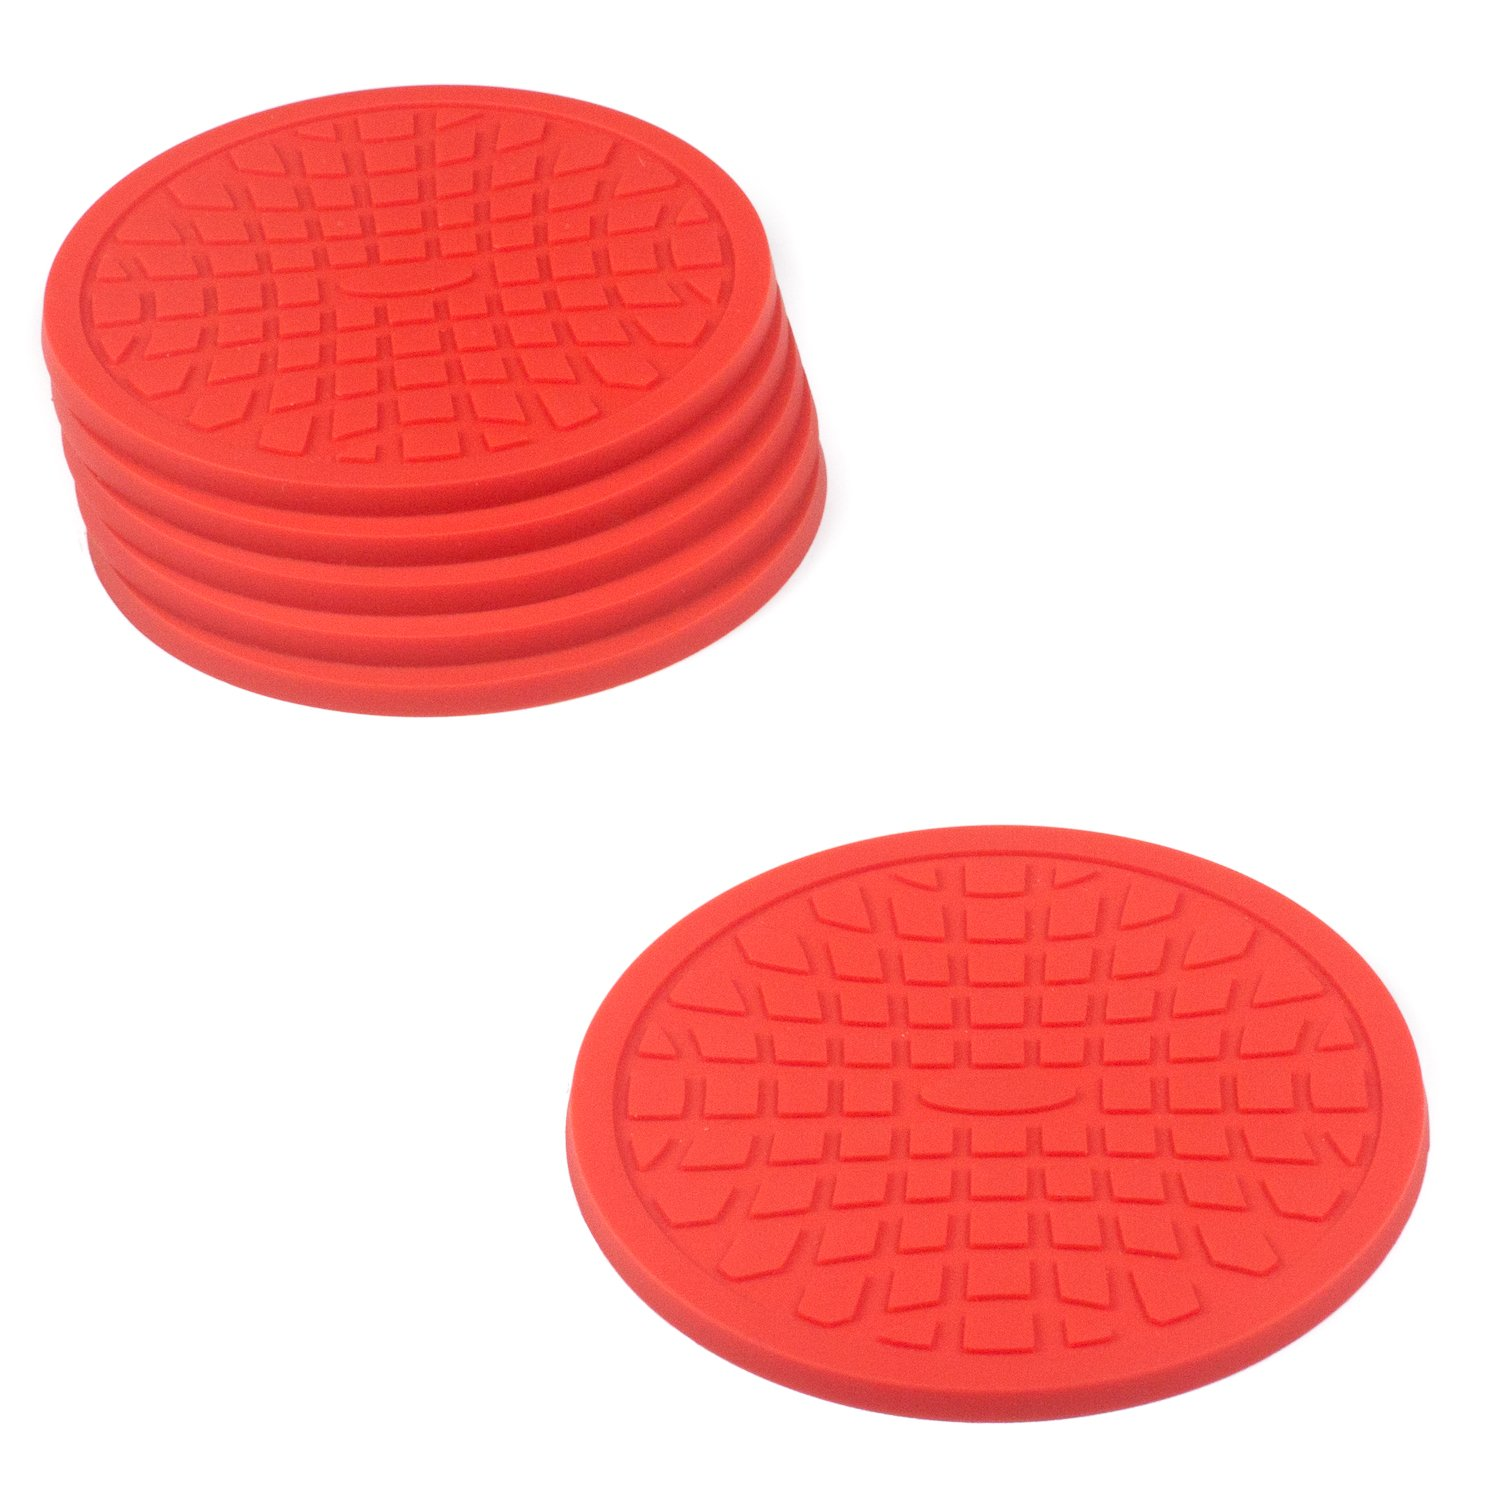 amazoncom  coasters by simple coasters  the best drink coasters  - amazoncom  coasters by simple coasters  the best drink coasters and bar drinkcoasters  these coasters for drinks won't stick to your glass  for